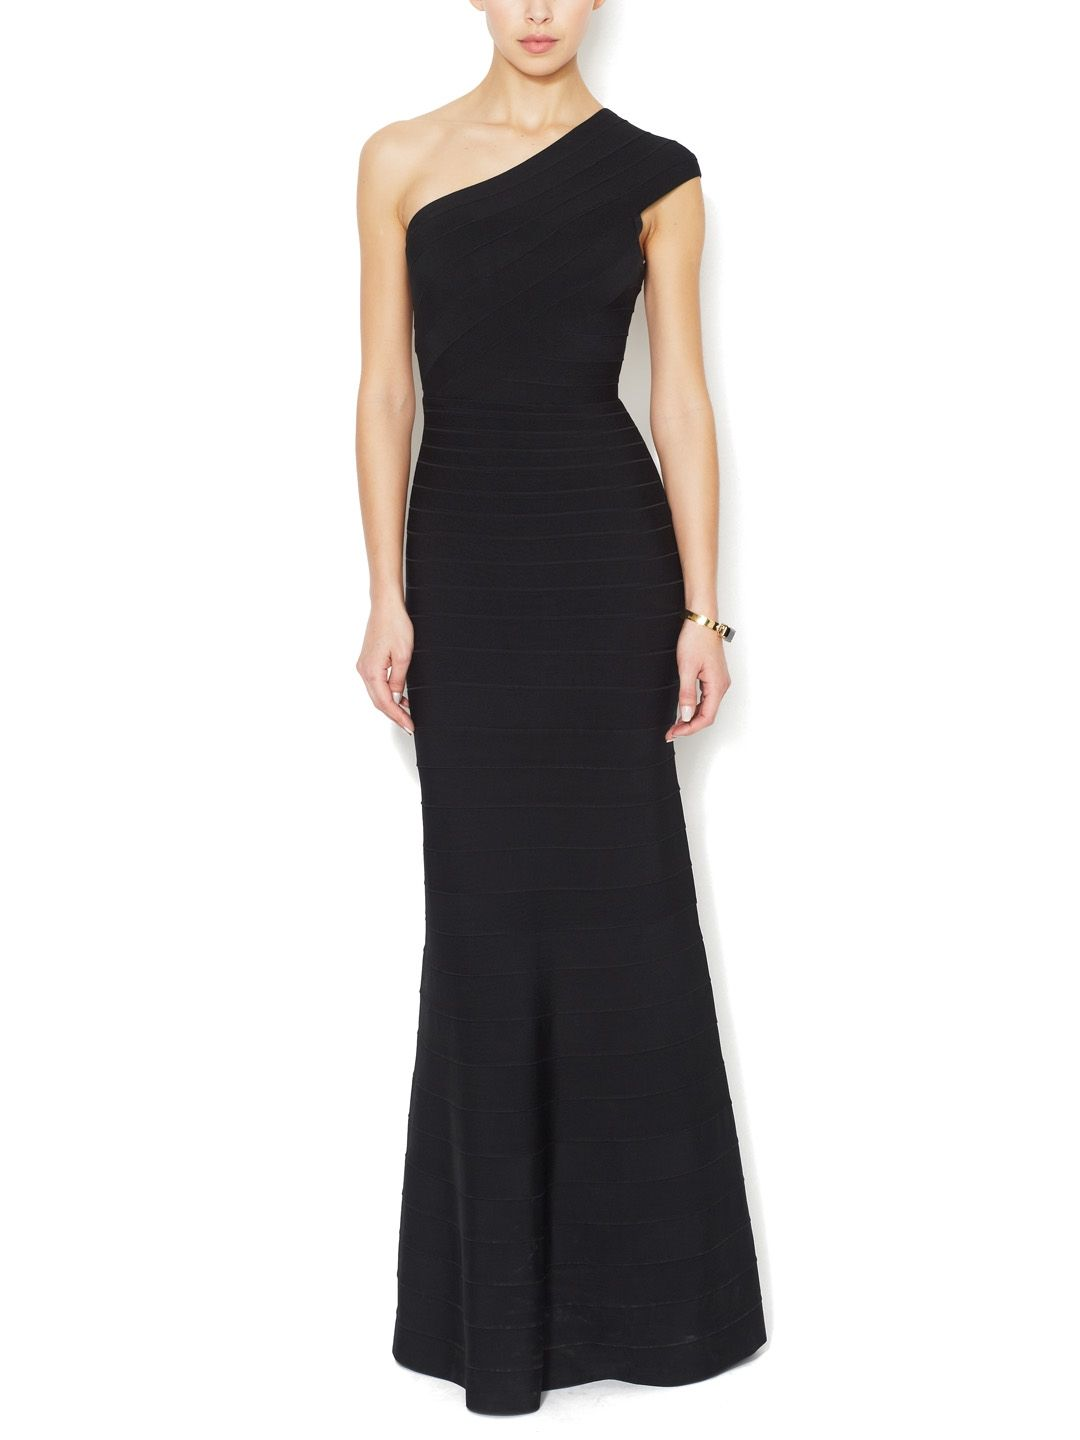 Elena One Shoulder Gown from Herve Leger on Gilt   My Style ...